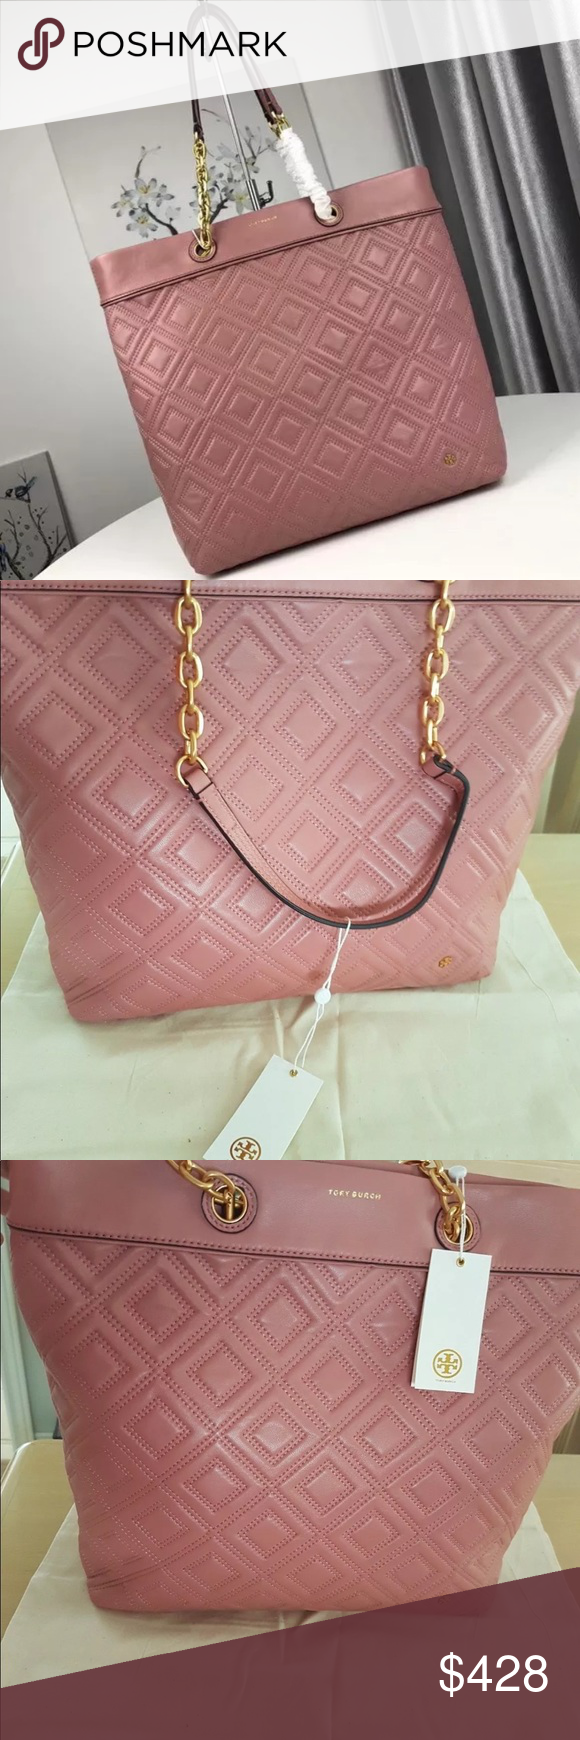 57ac36c1007 Tory Burch Fleming Tote- Pink Magnolia 🌸Pink Magnolia Ladylike quilting  and chains  the